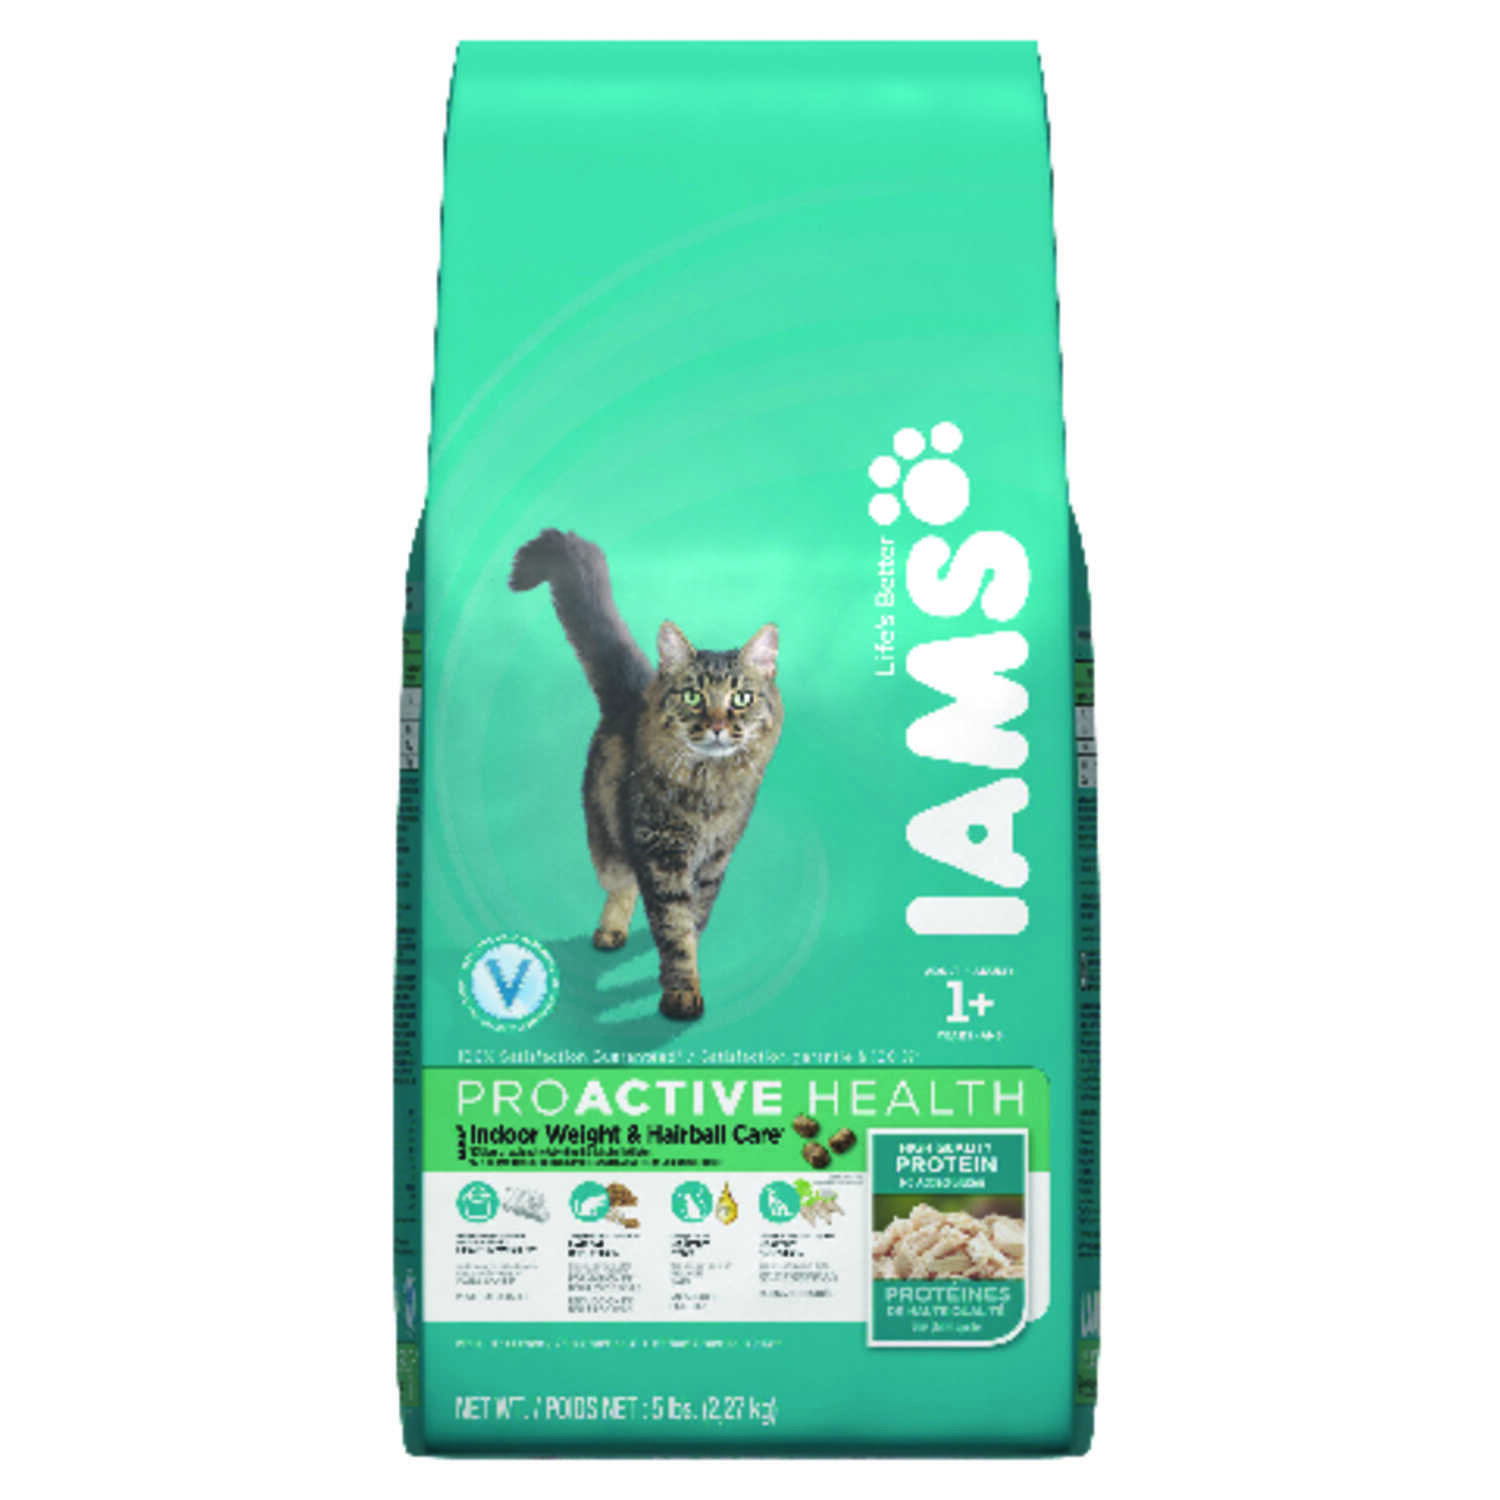 Iams  ProActive Health Indoor Weight & Hairball Care  Natural  Dry  Cat  Food  5 lb.